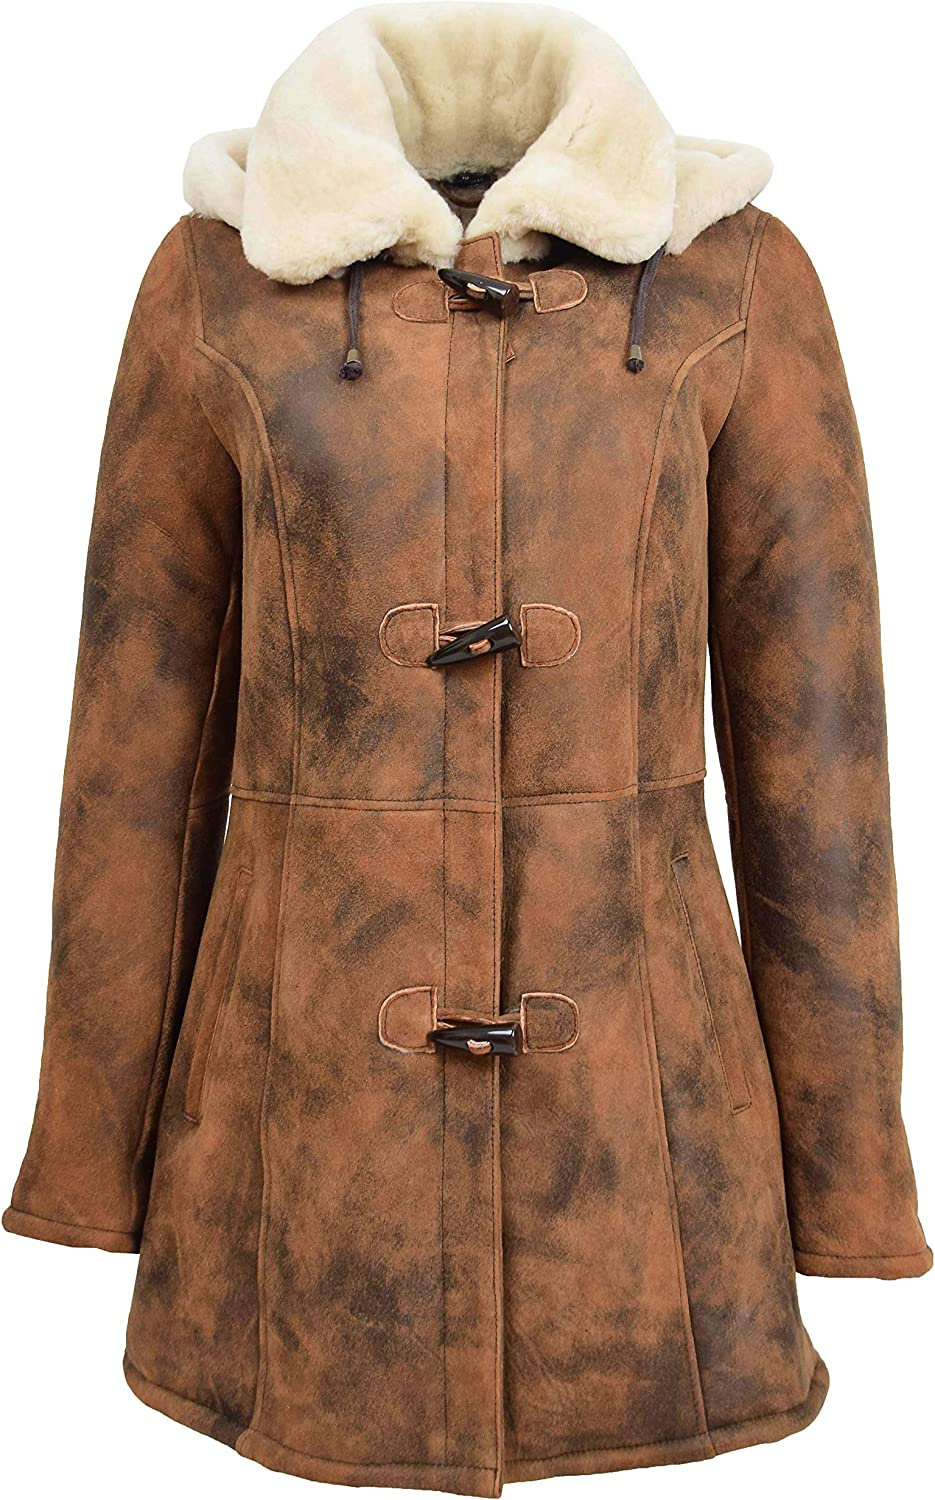 Womens Sheepskin Popular shop is the lowest price challenge Duffle Coat Finally popular brand Mid Parka Hooded Shearling Length E